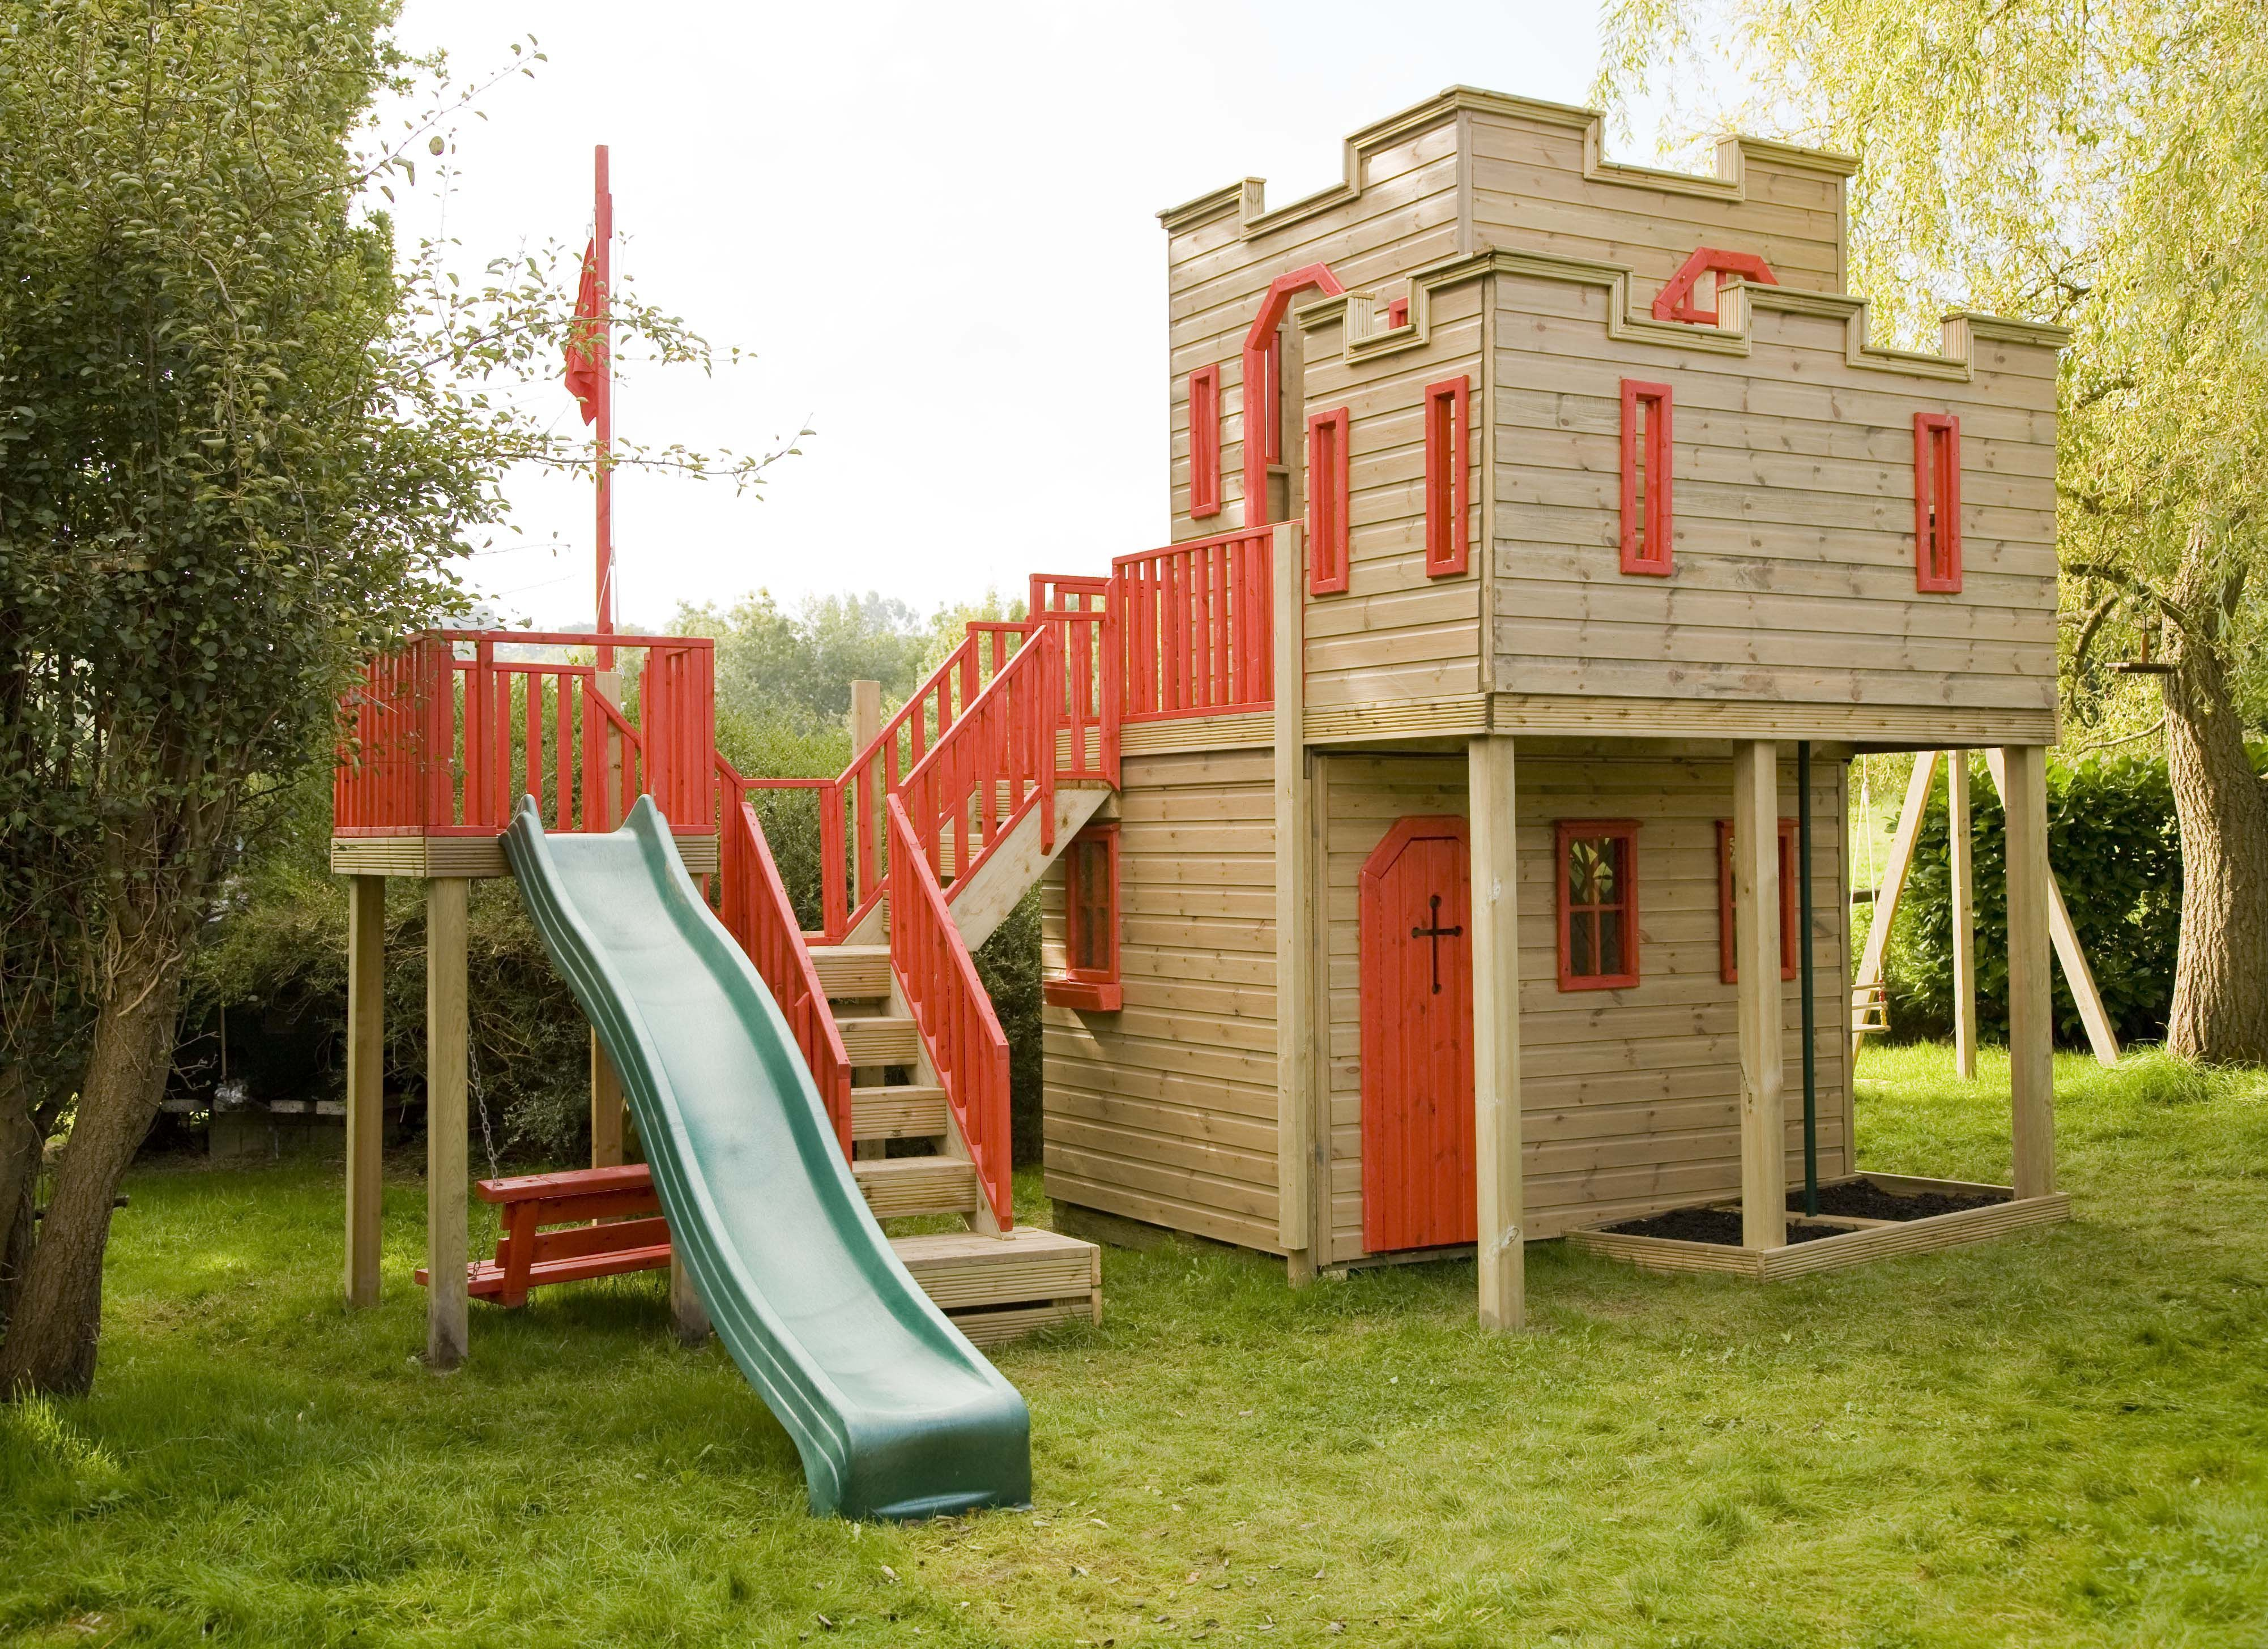 Castle Playhouse More Diy playhouse, Play houses, Kids